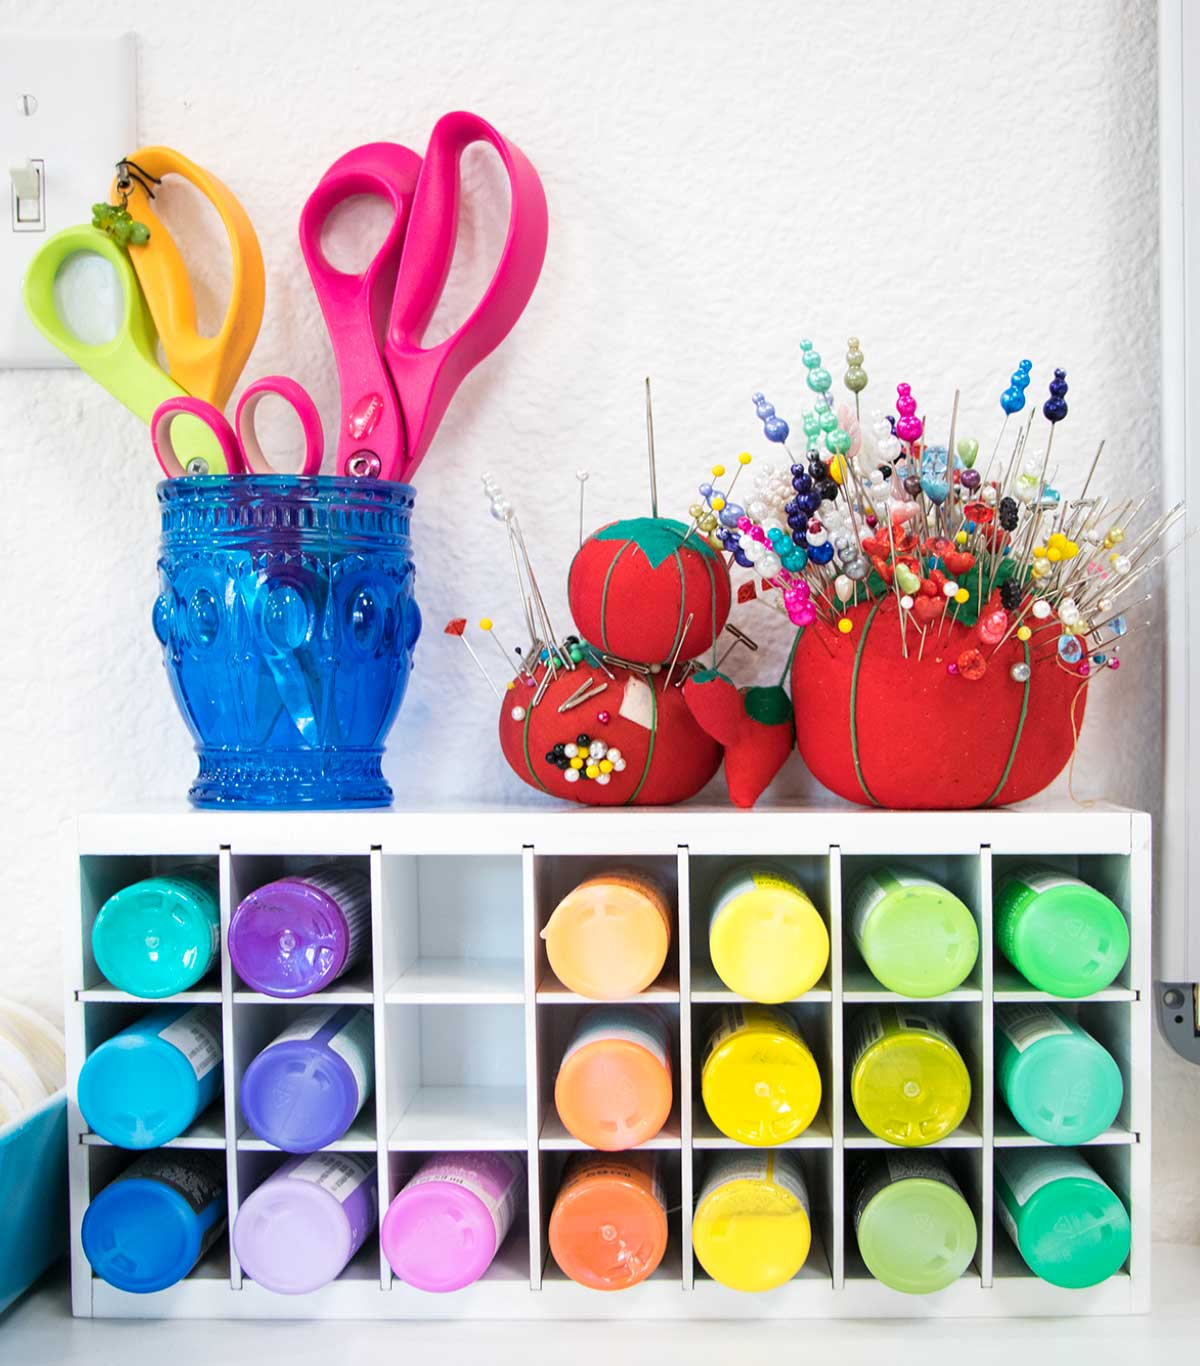 Paint storage box from artbin with cup of scissors and pin cushions on top